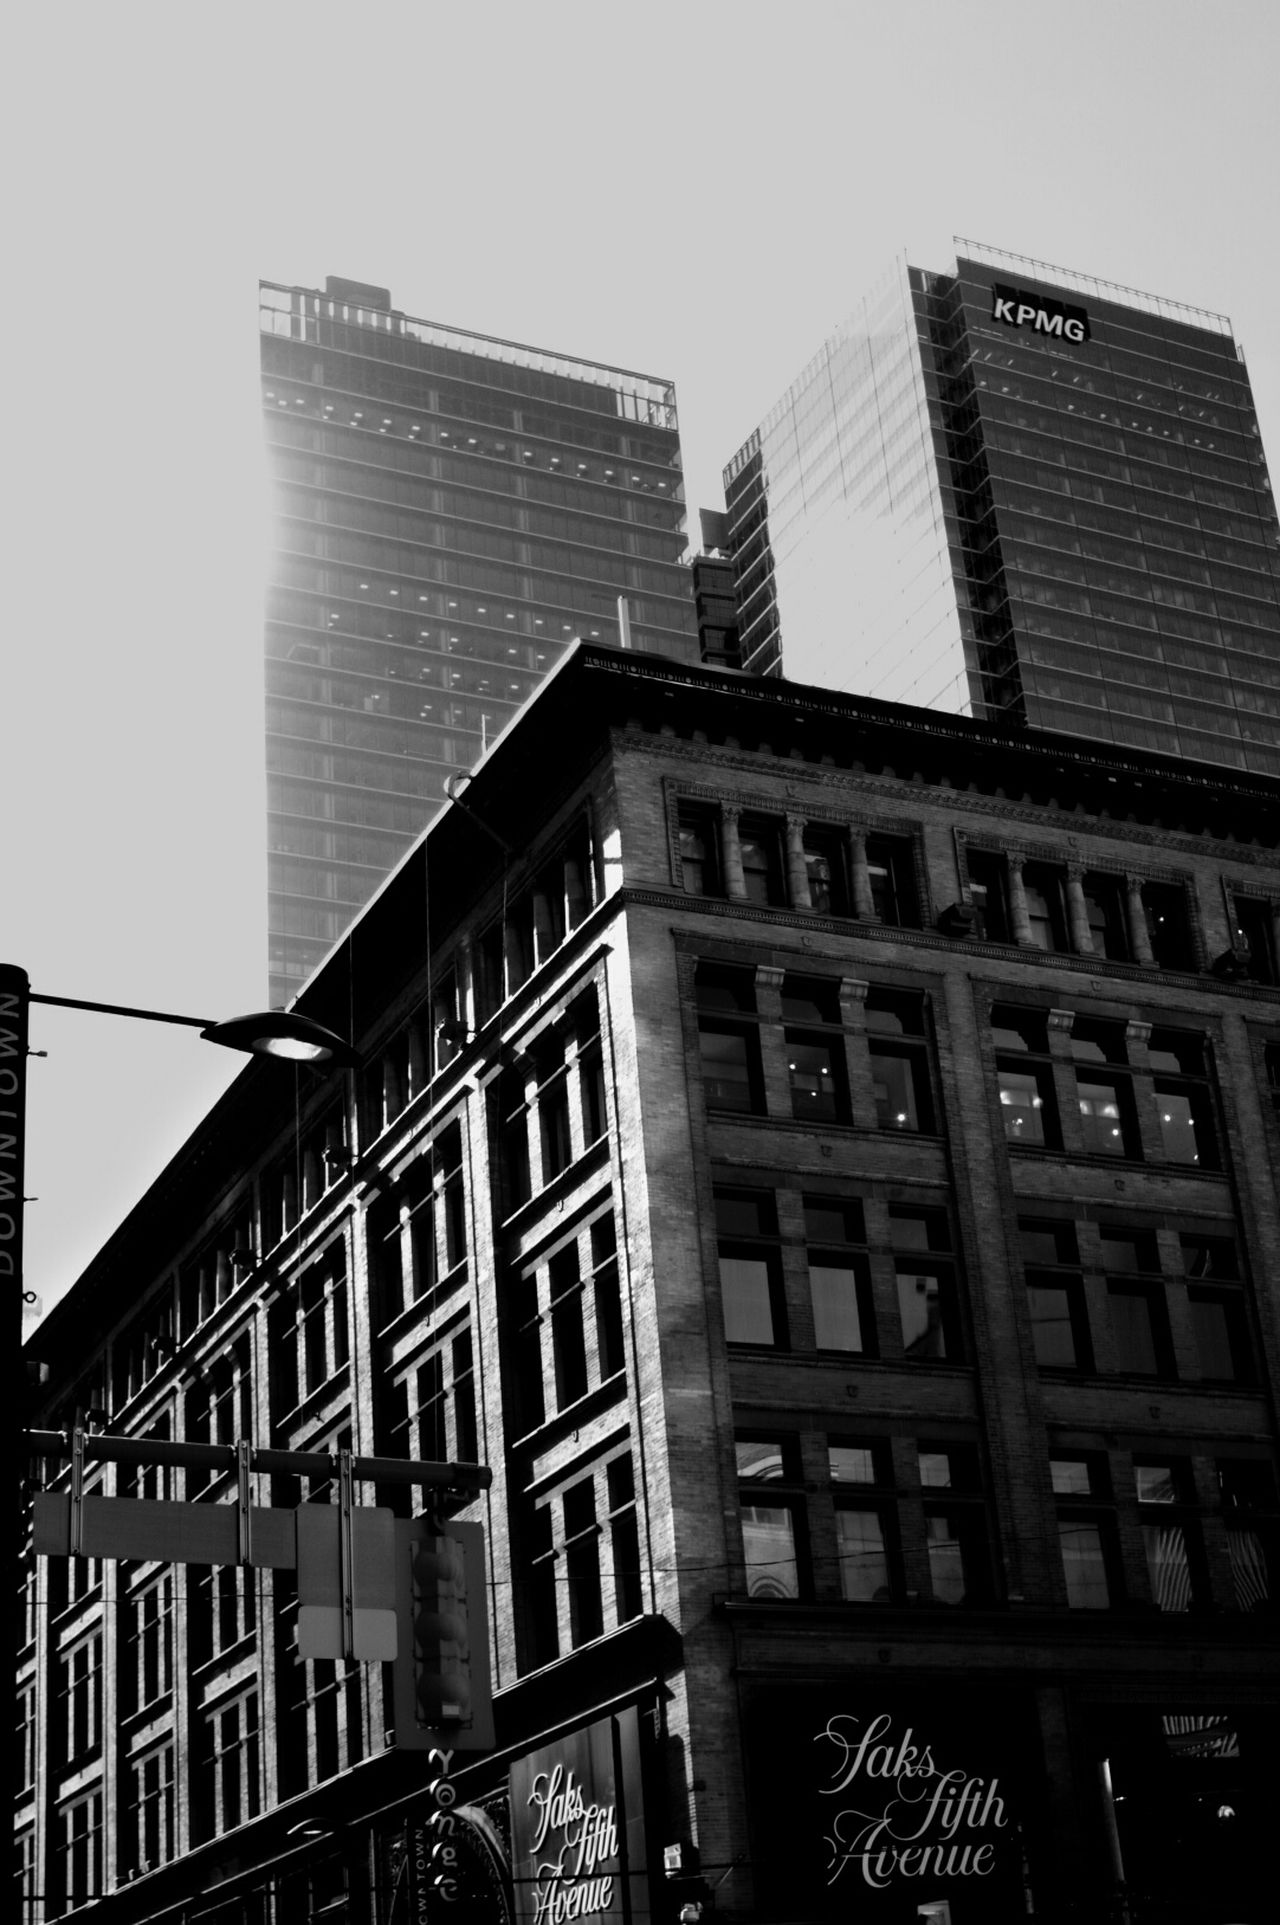 Building Exterior Architecture Built Structure Window City Façade No People City Life Outdoors Sky Clear Sky Skyscraper Apartment Business Finance And Industry Day The Week On Eyem Photooftheday Building Industrial Outdoor Photography Toronto Canada Downtown